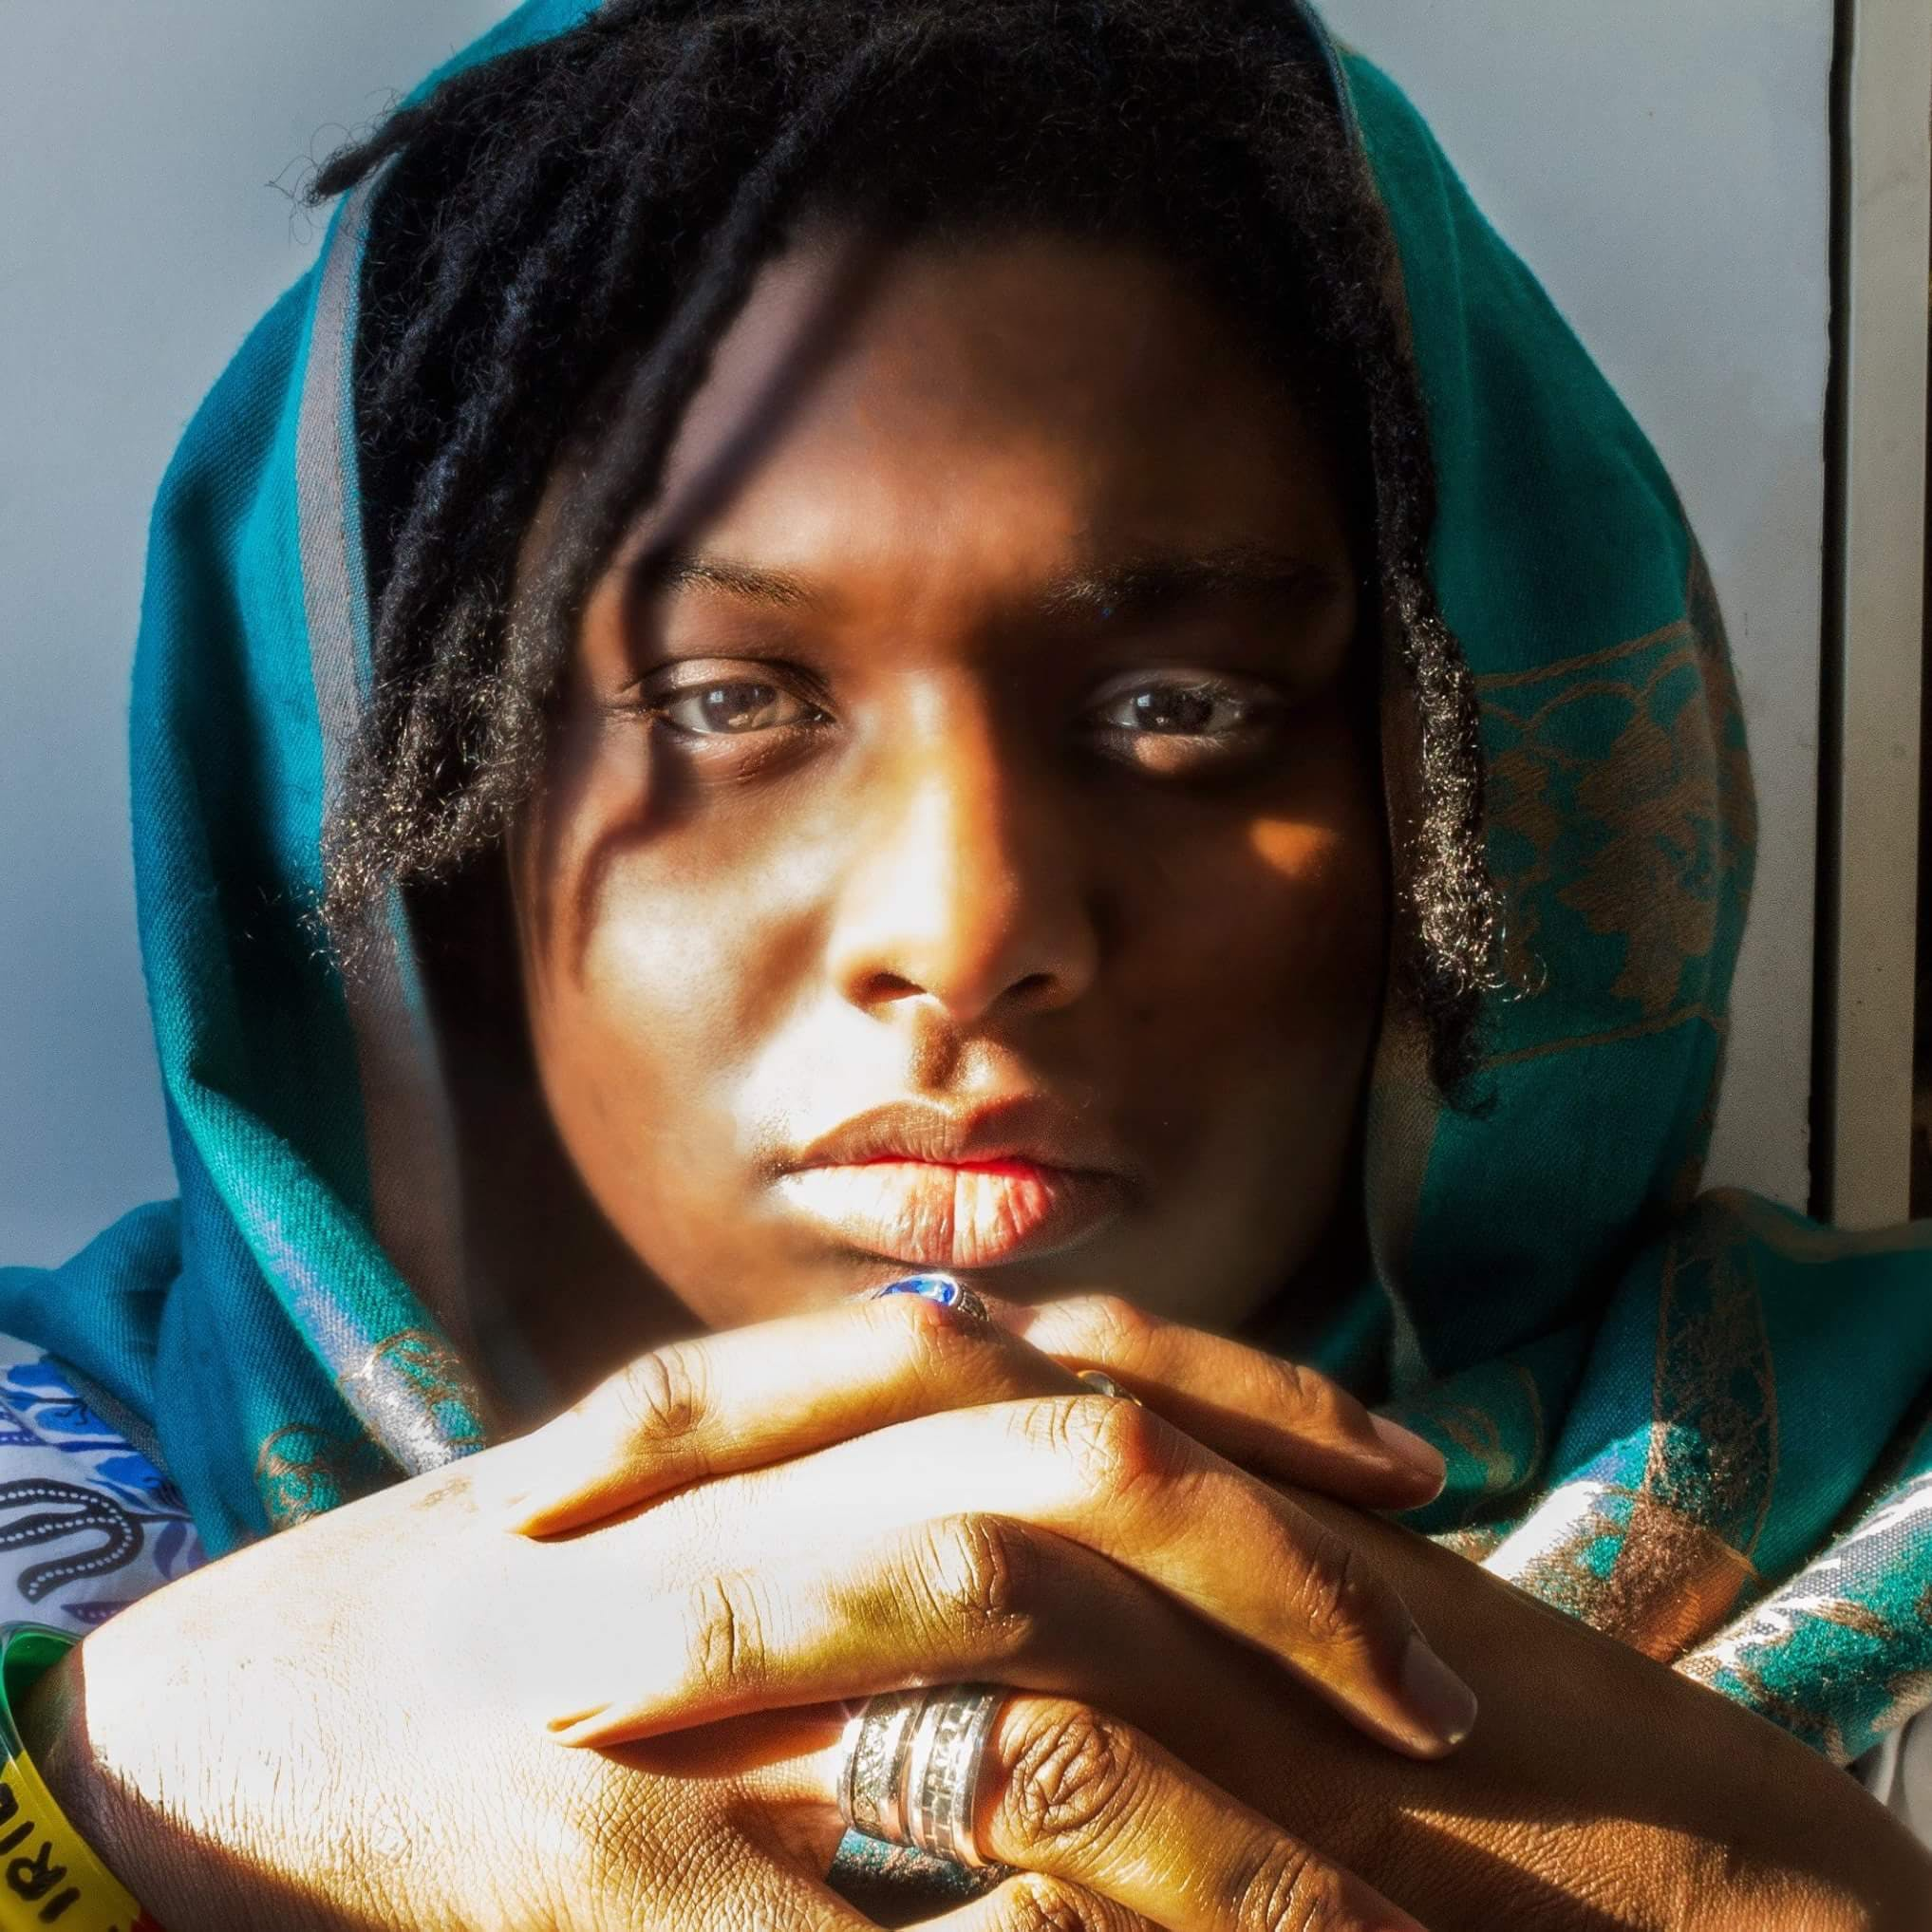 Woman With Dreaded Hair Wearing Green Hijab